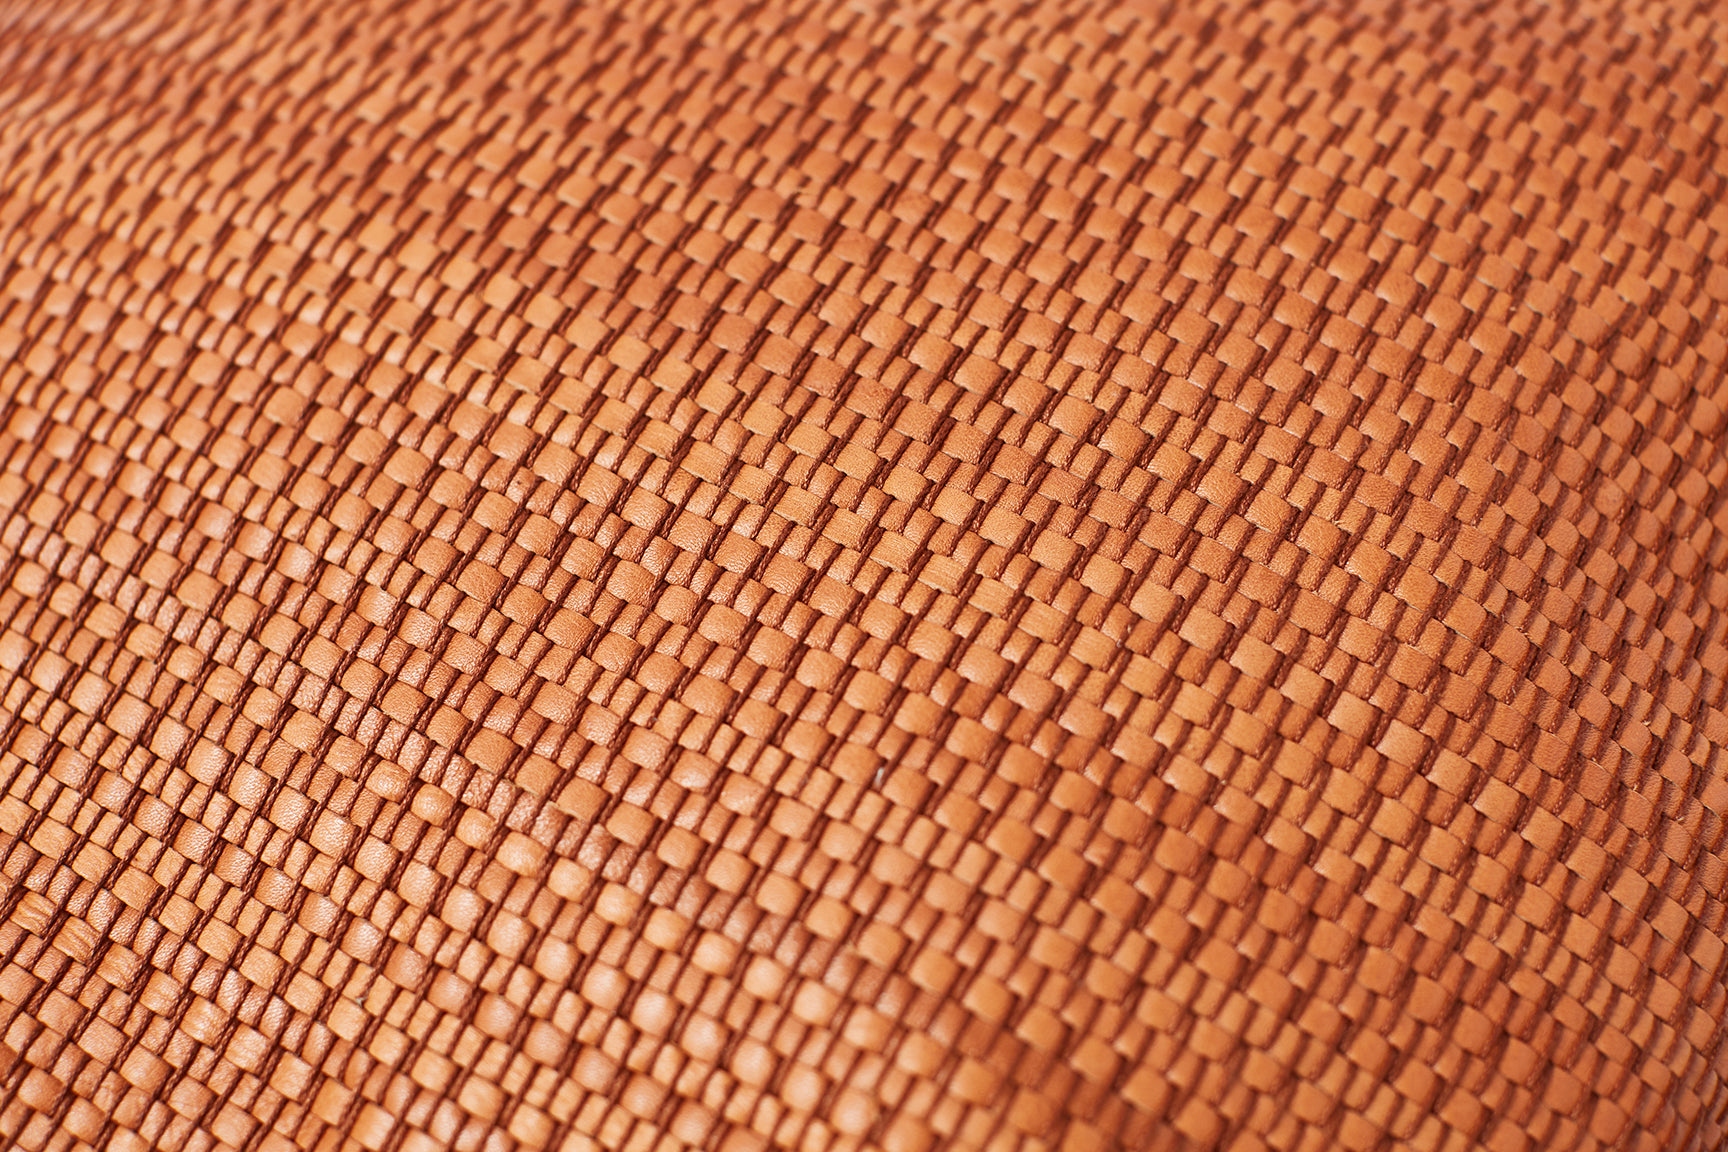 BACKPACK – tan woven leather